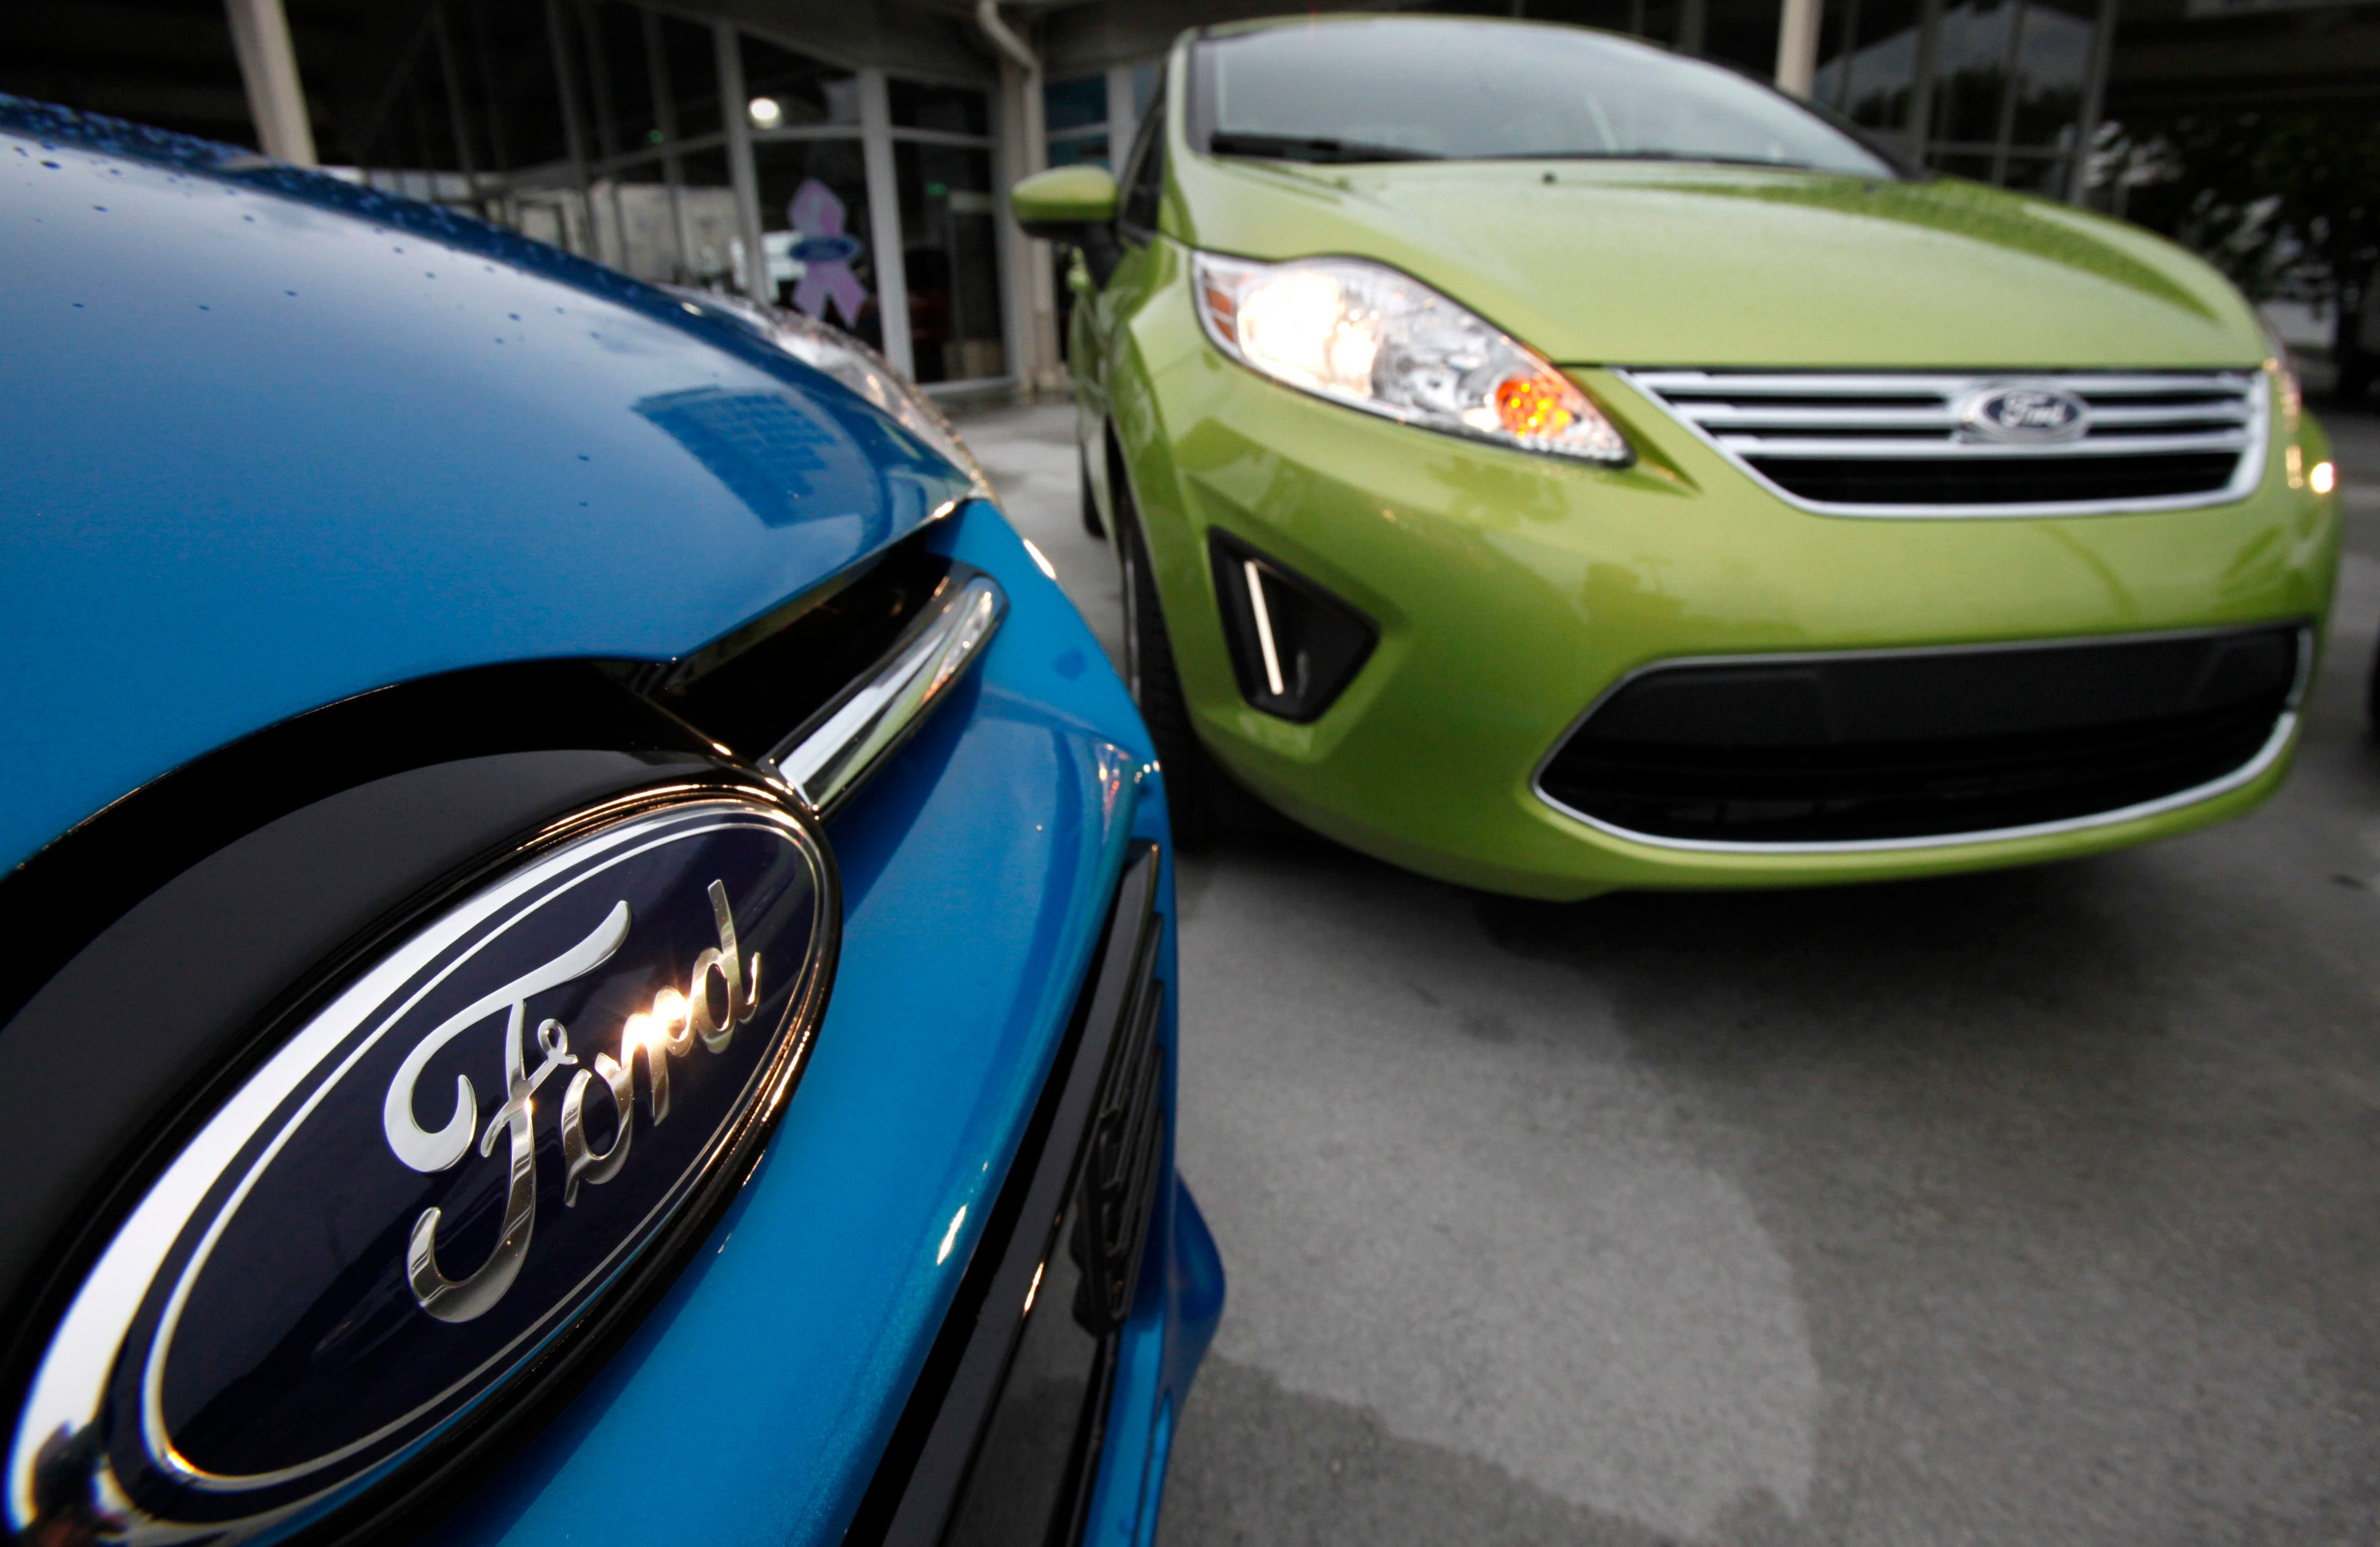 Ford Knew Focus Fiesta Had Flawed Transmission Sold Them Anyway